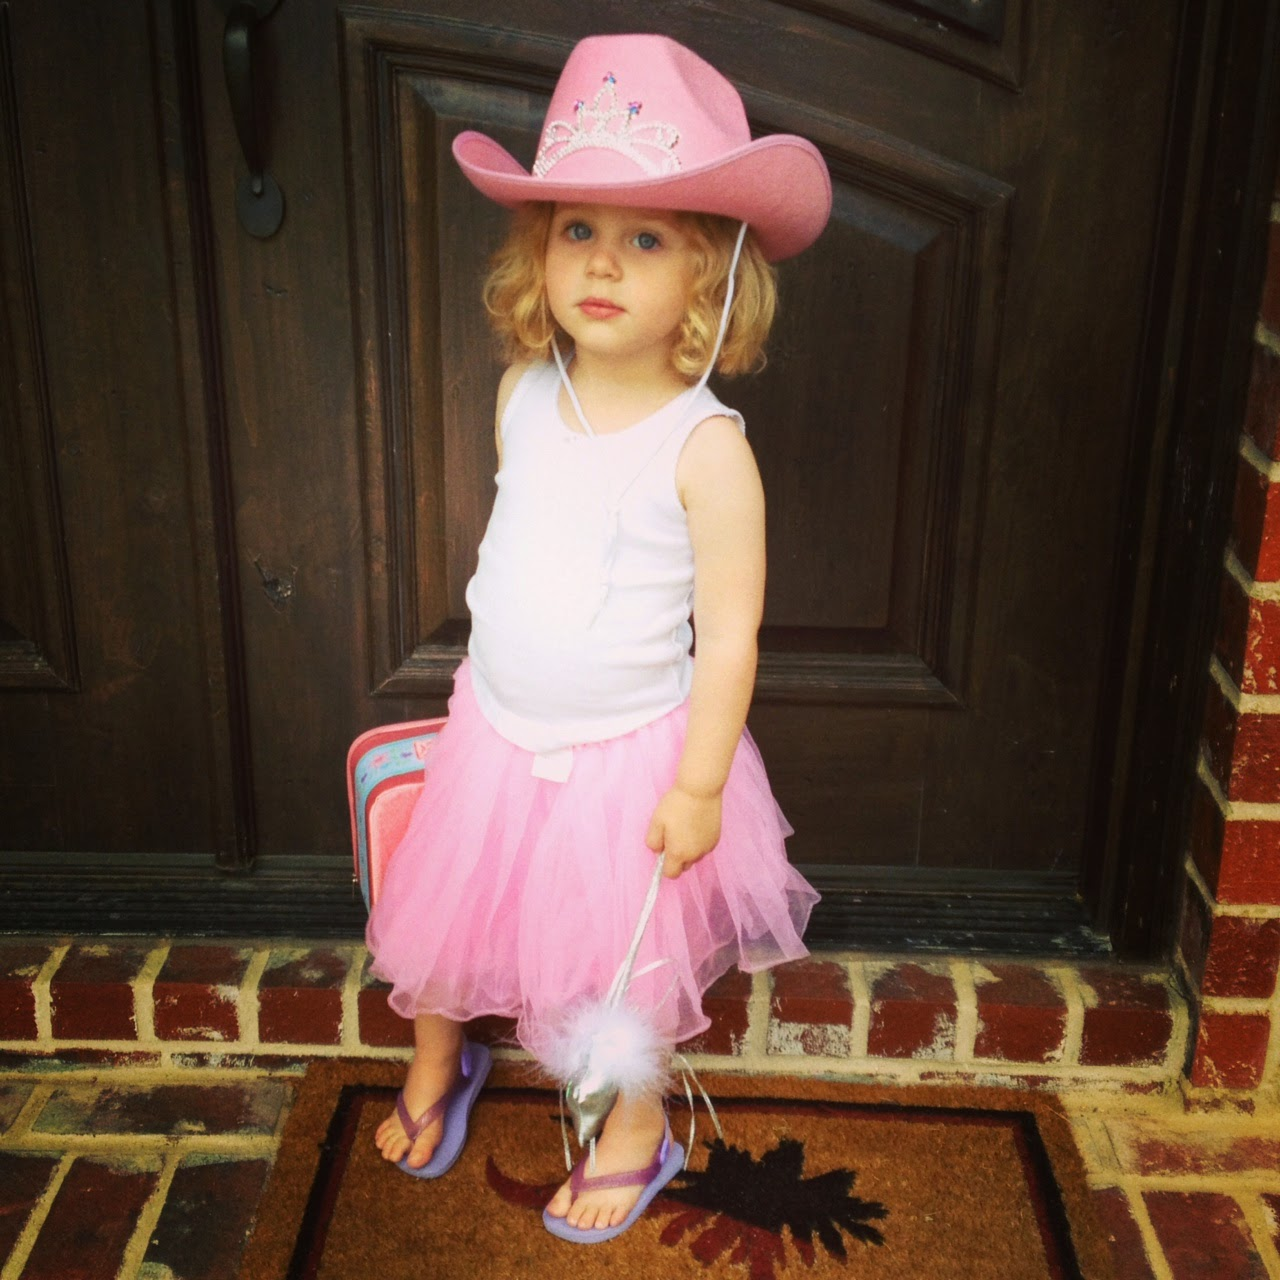 Princess Cowgirl and Her Wand